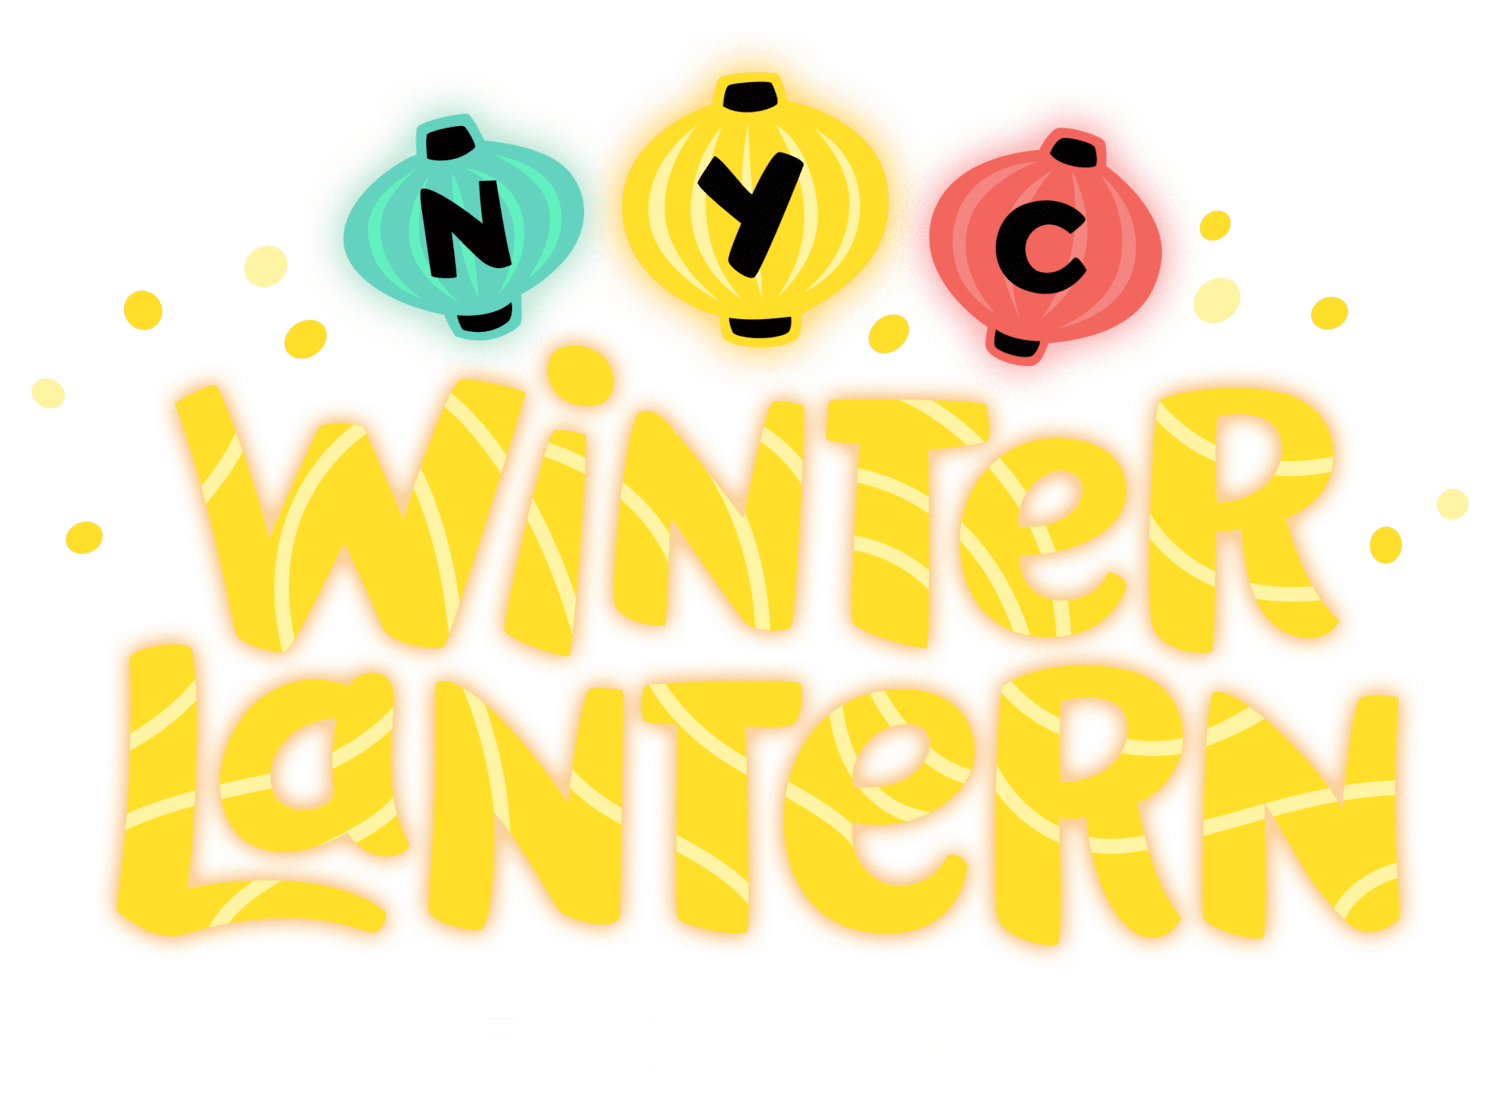 NYC Winter Lantern Festival